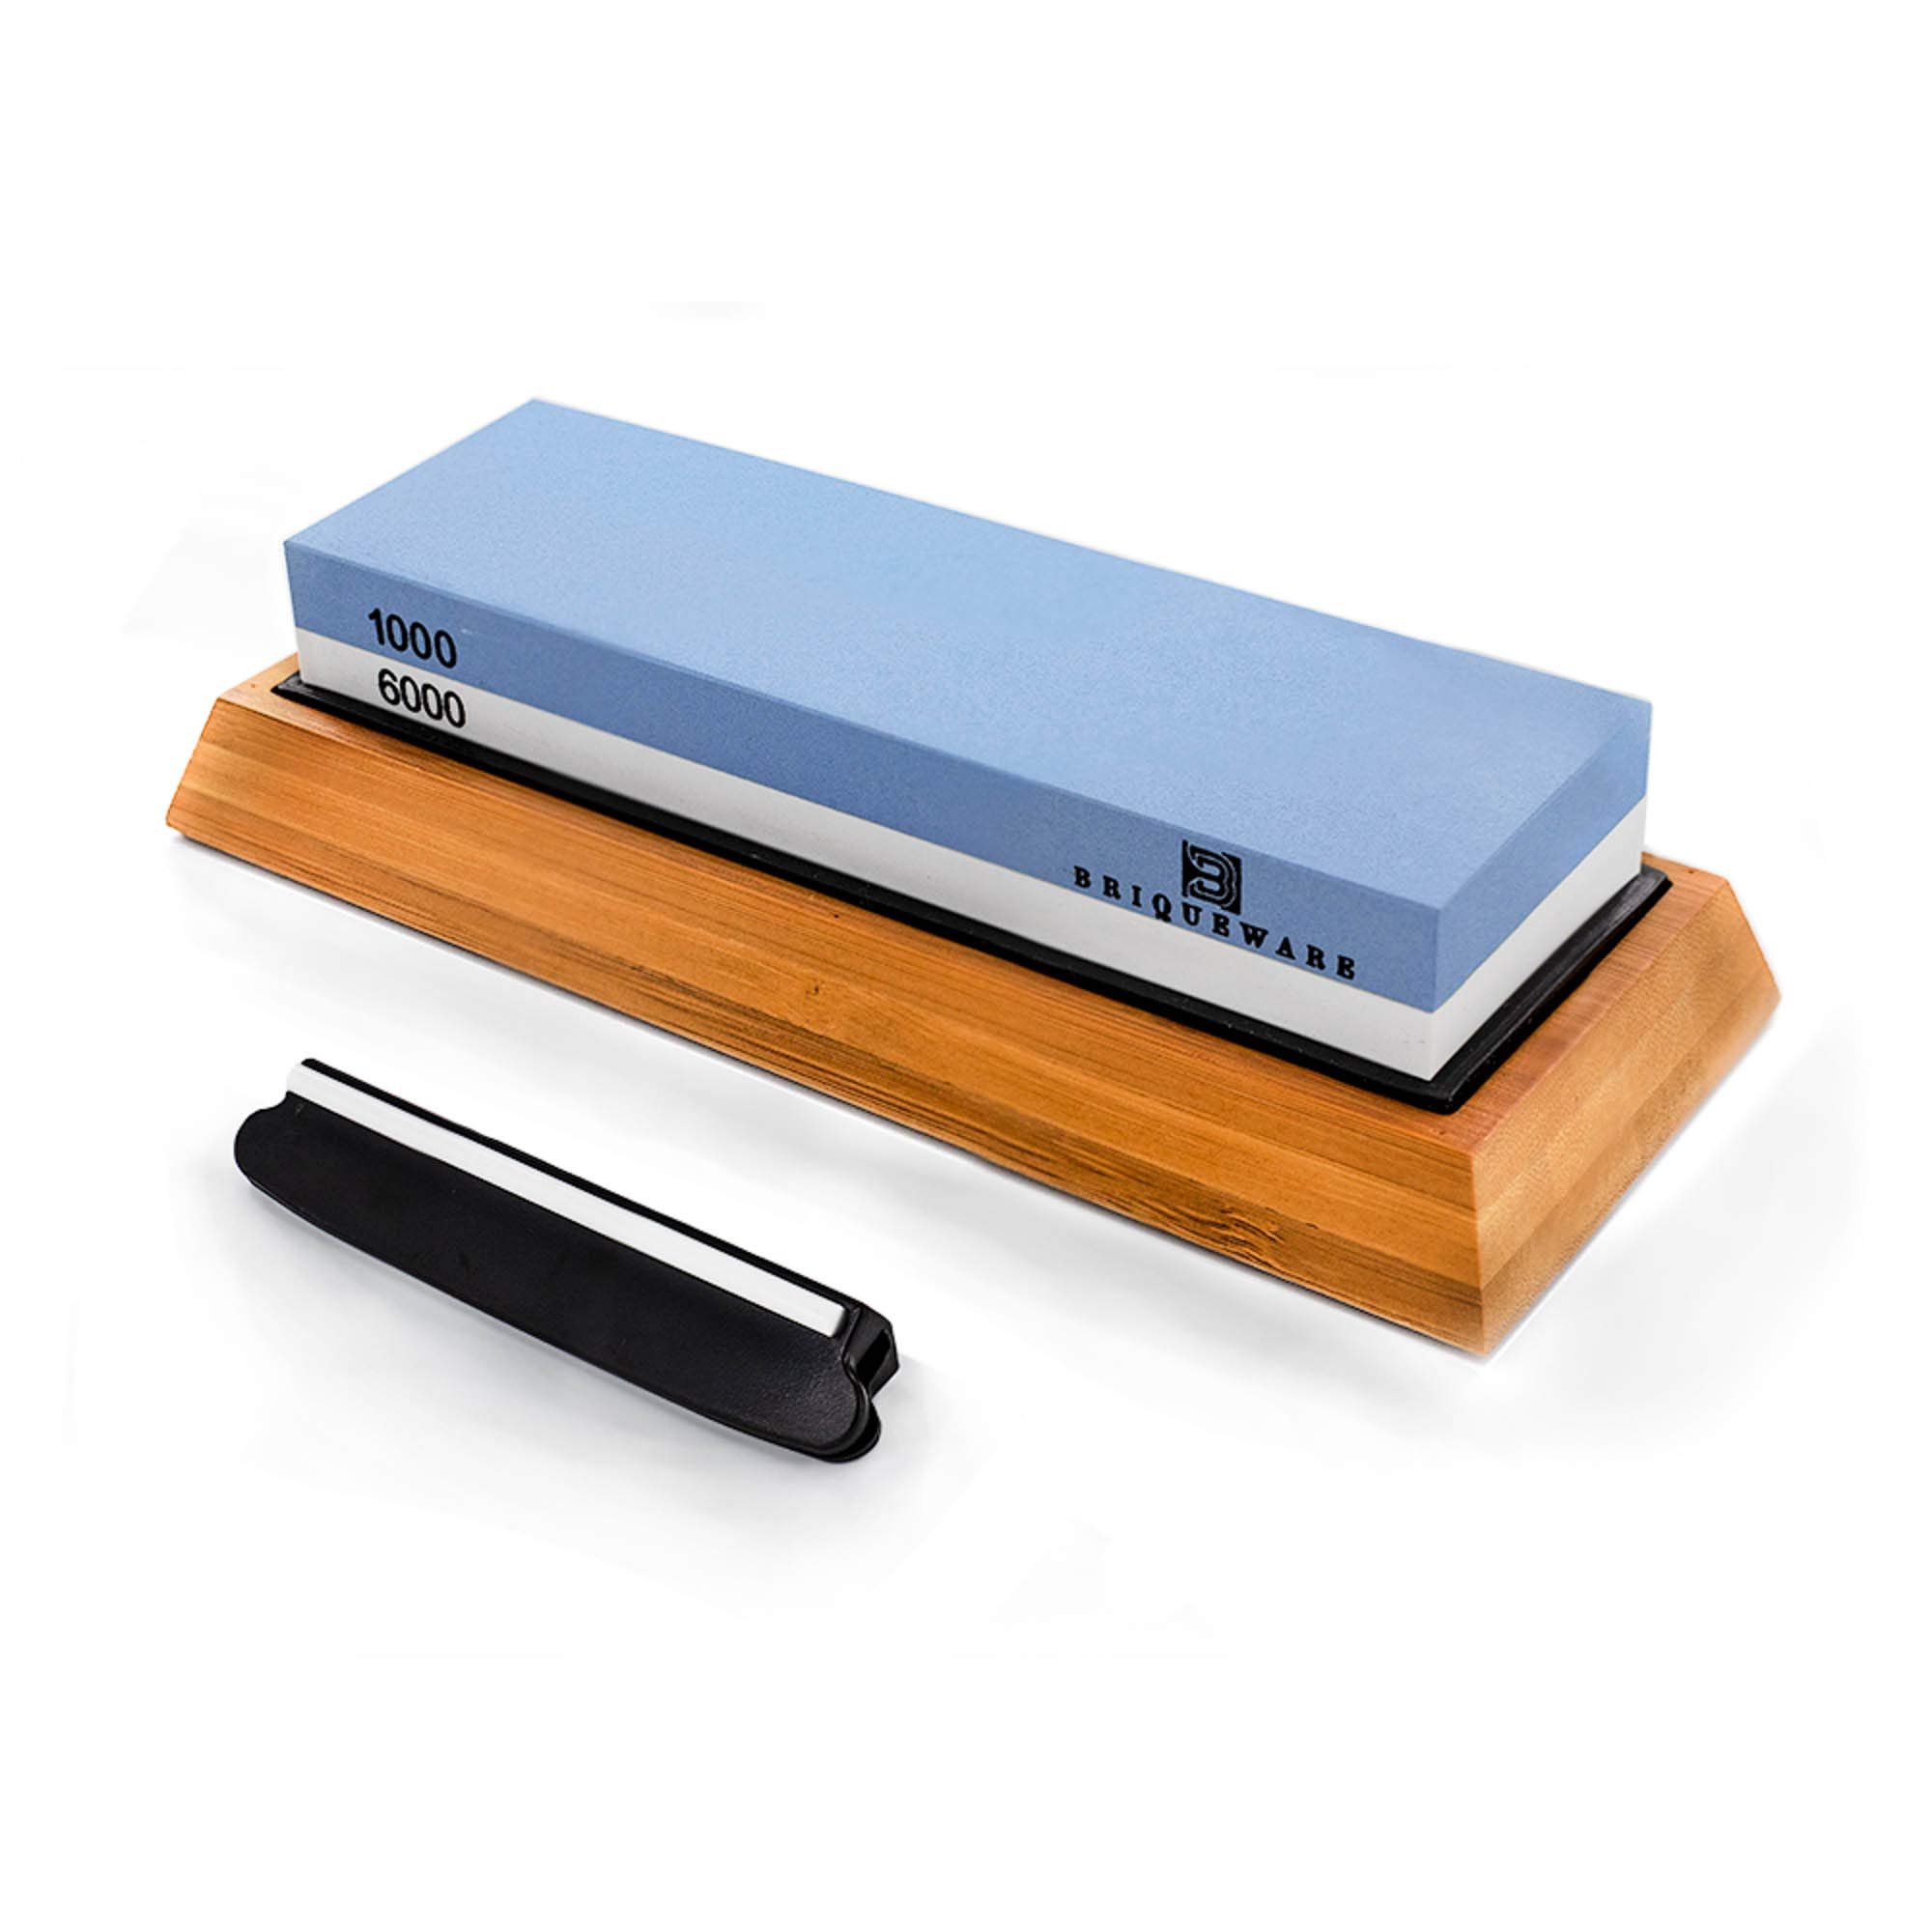 Superior Whetstone knife sharpening stone   Wet stone knife sharpener 1000/6000 Grit with Non-Slip bamboo base and Angle Guide   Best Waterstone Kitchen Knives Sharpening Kit